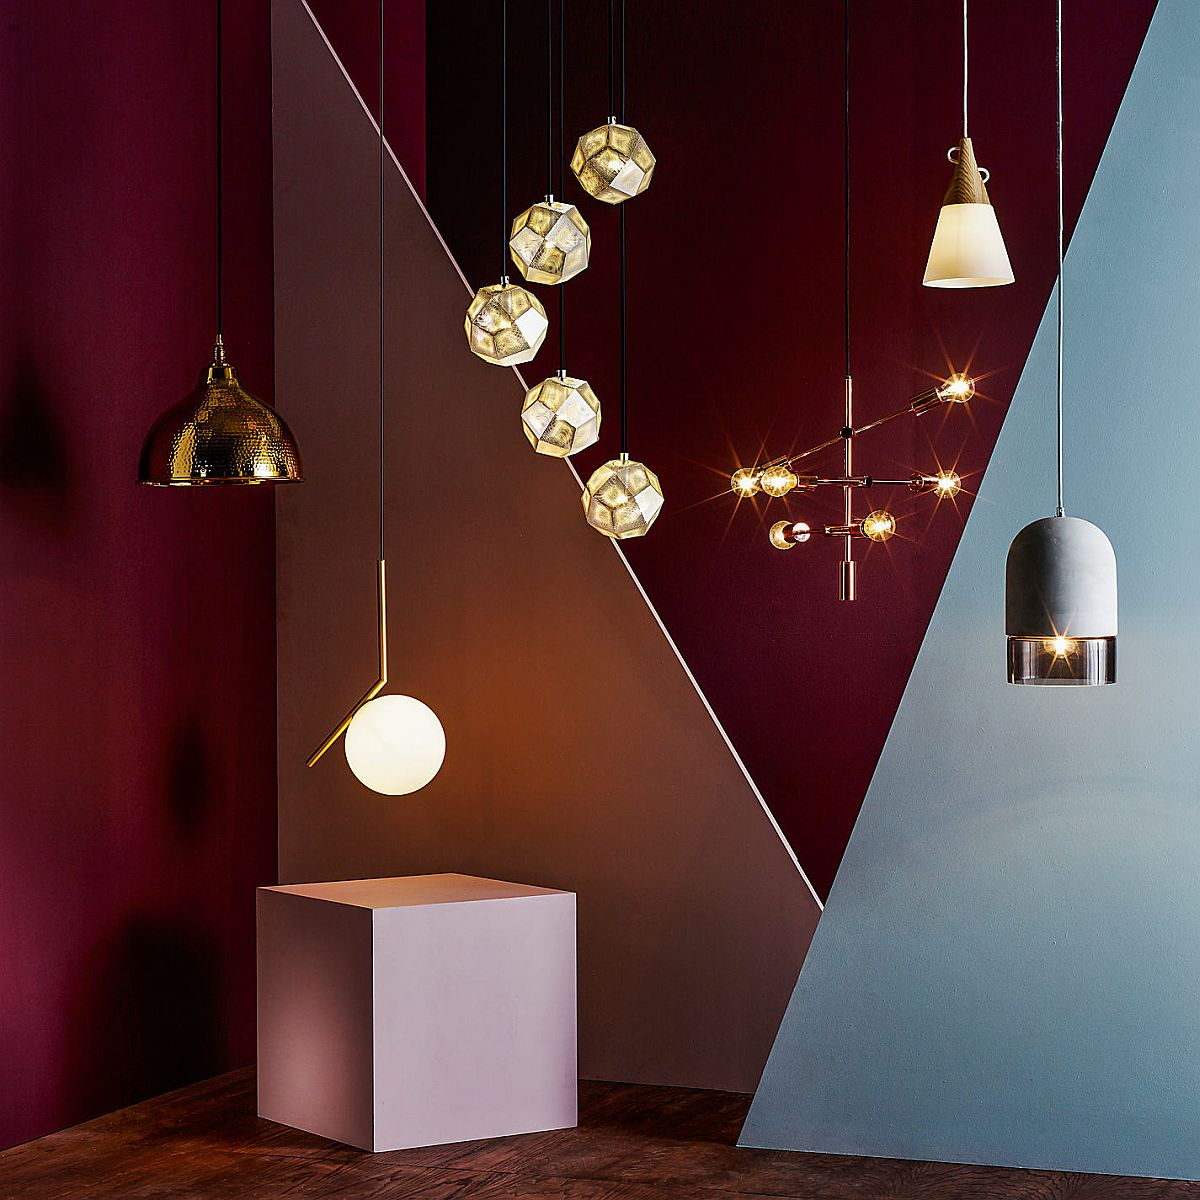 Exqusite pendant lights from Tom Dixon